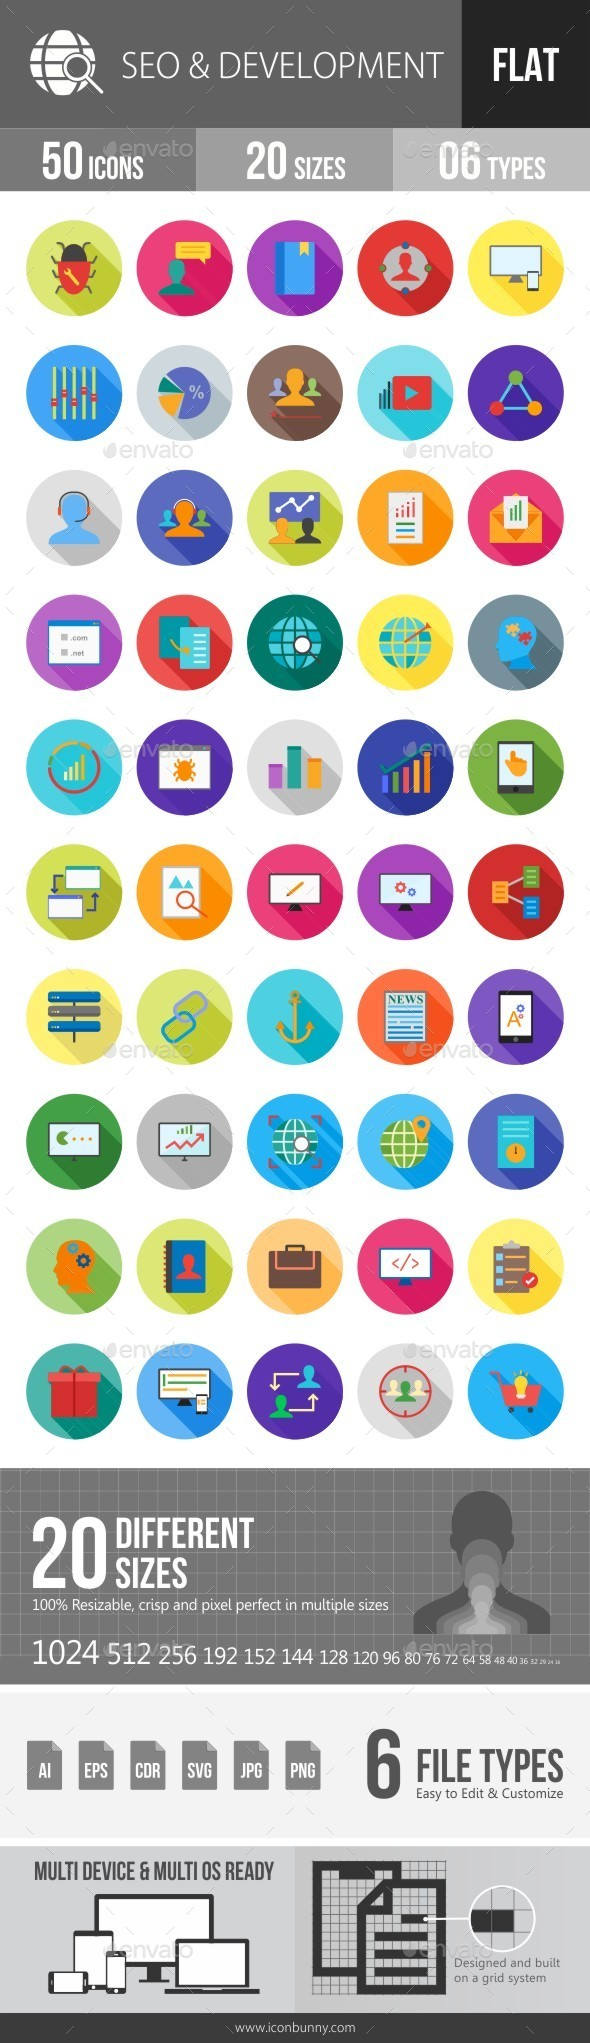 SEO & Development Services Flat Shadowed Icons - Icons